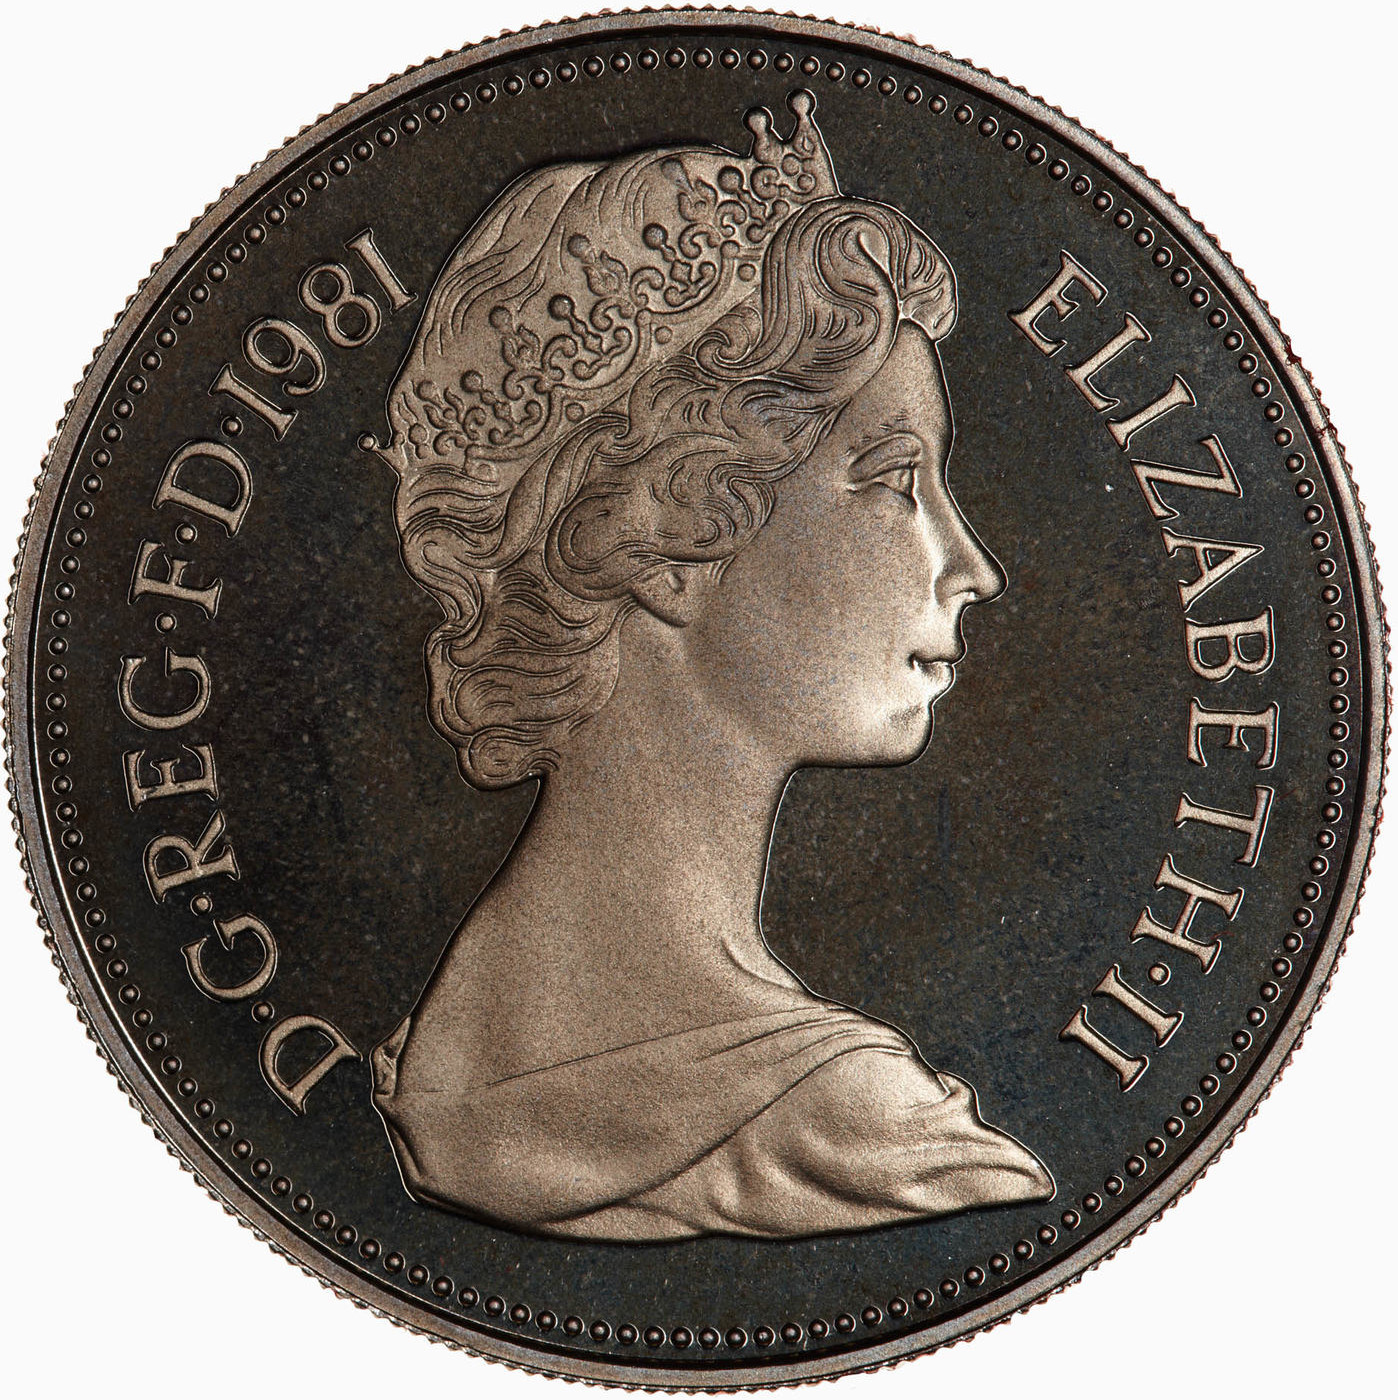 Ten Pence 1981: Photo Proof Coin - 10 New Pence, Elizabeth II, Great Britain, 1981